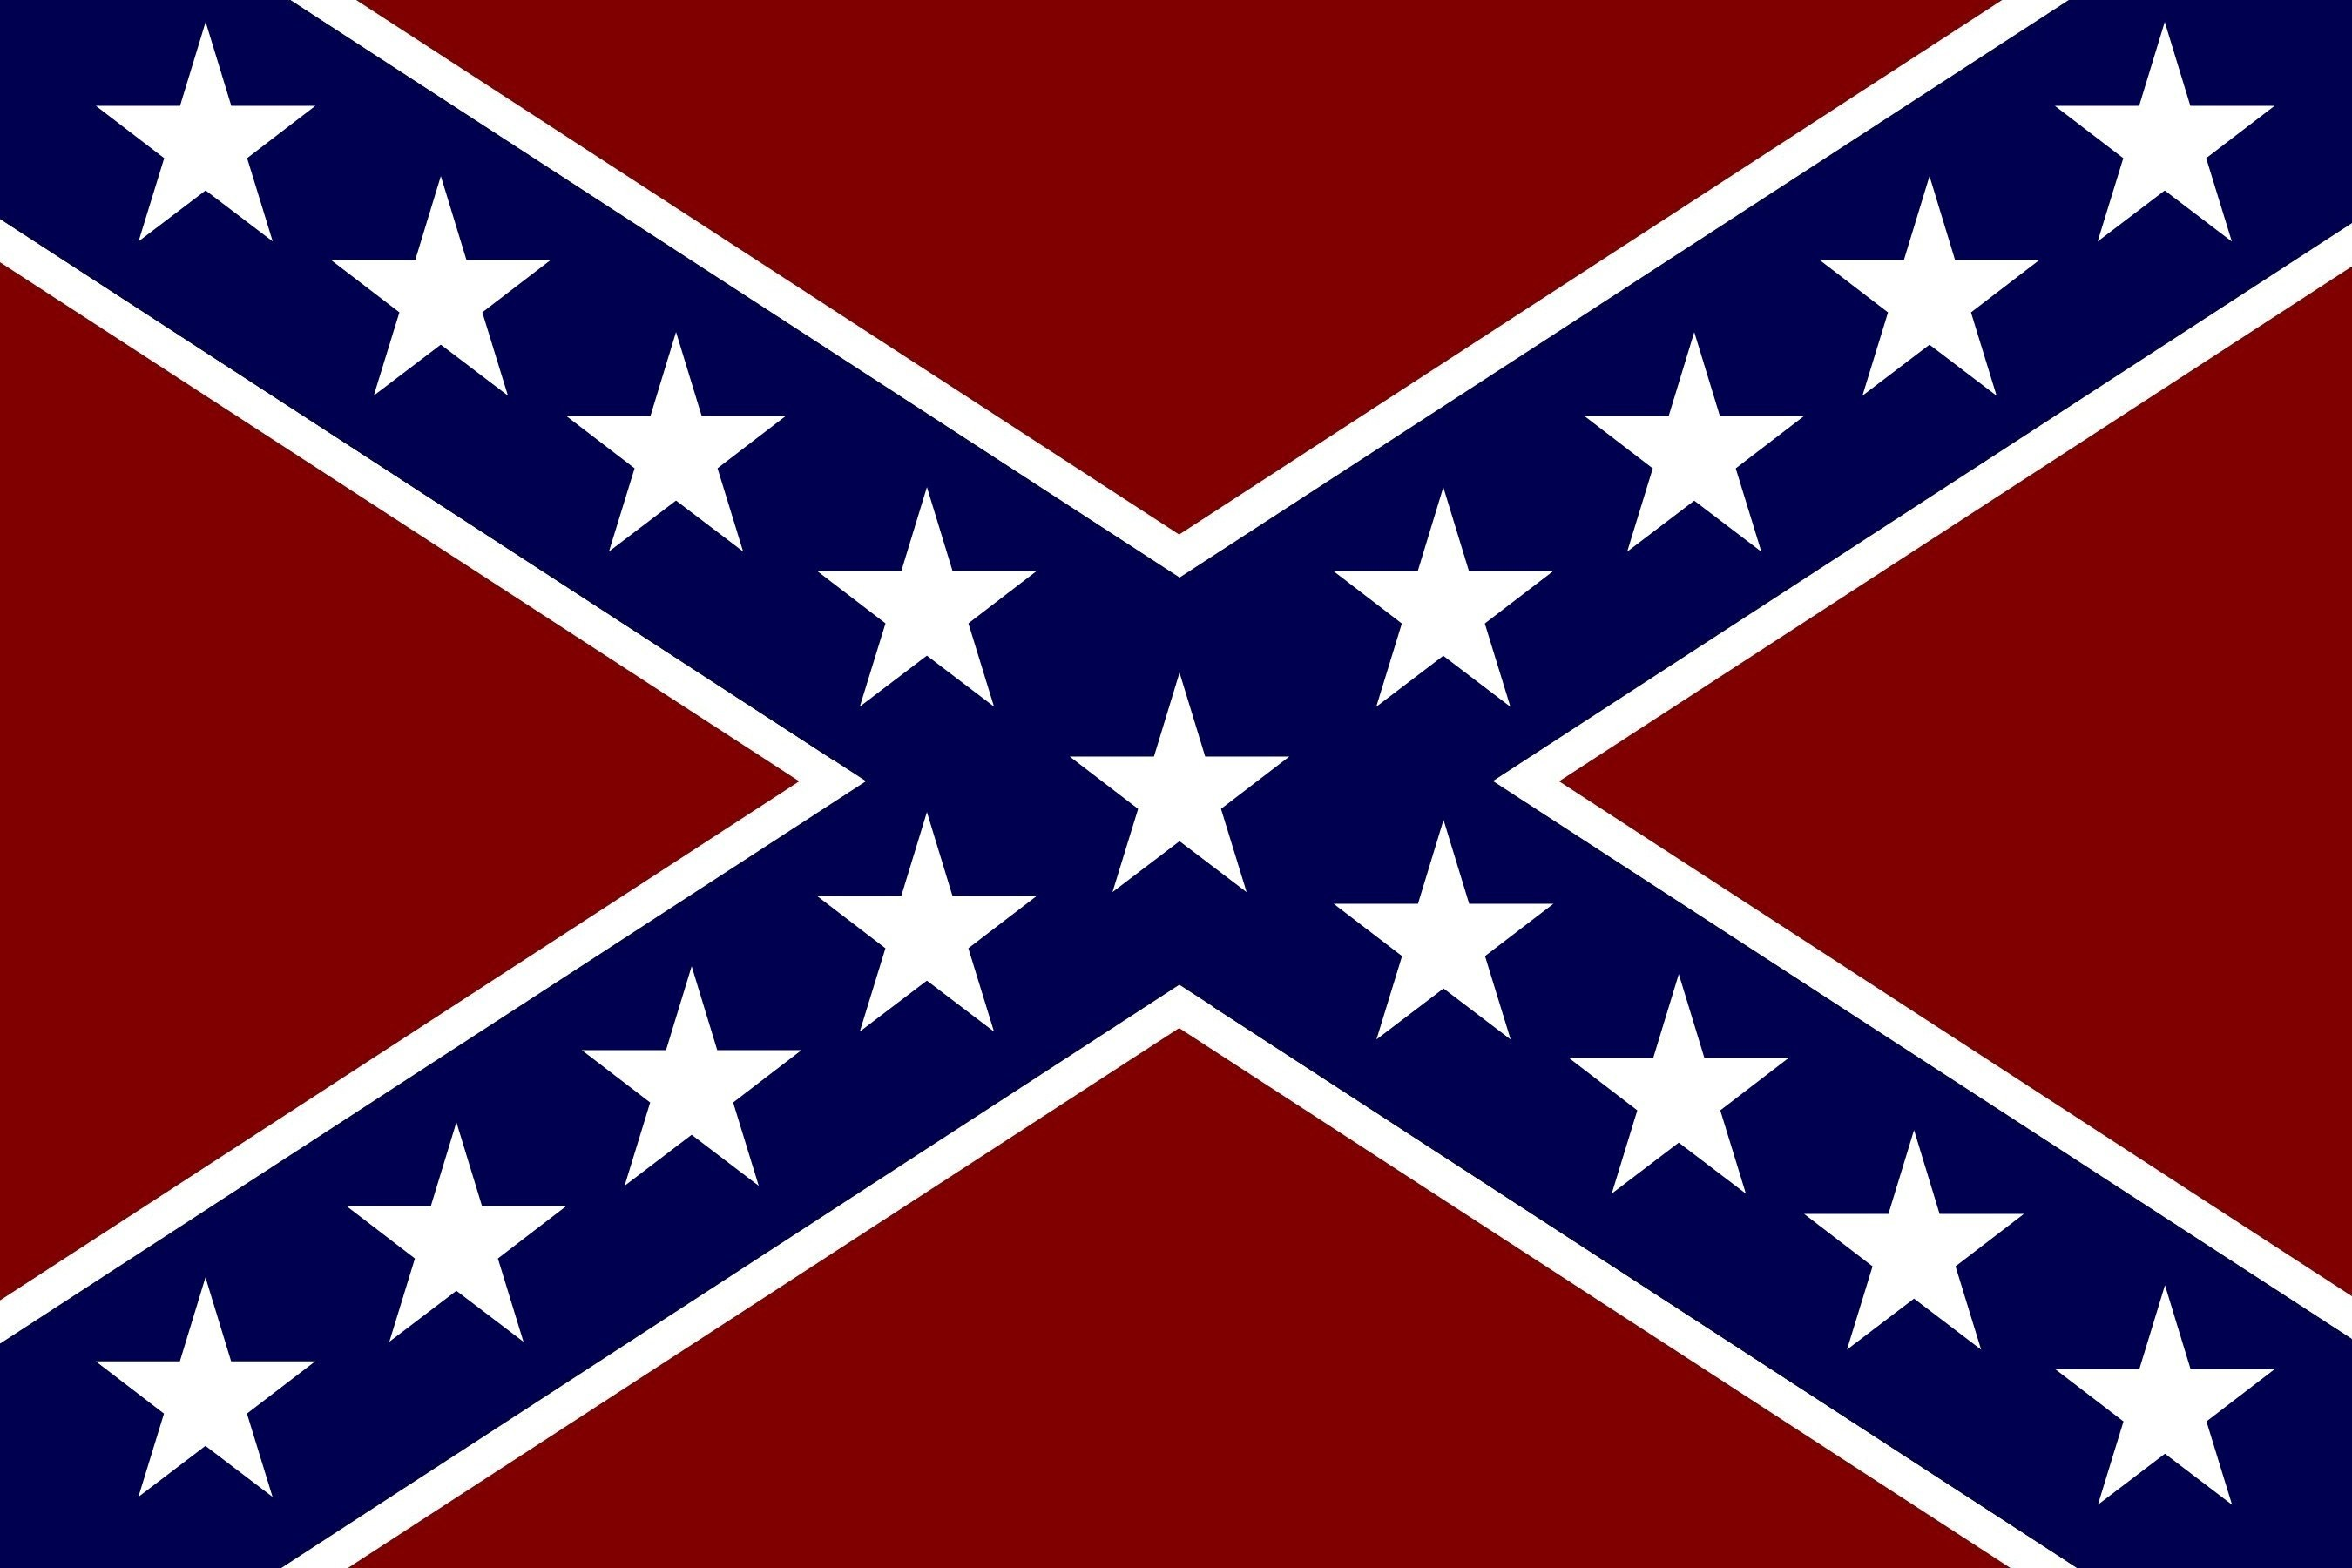 Res: 2700x1800, Free Rebel Flag Backgrounds Download | Wallpapers, Backgrounds .